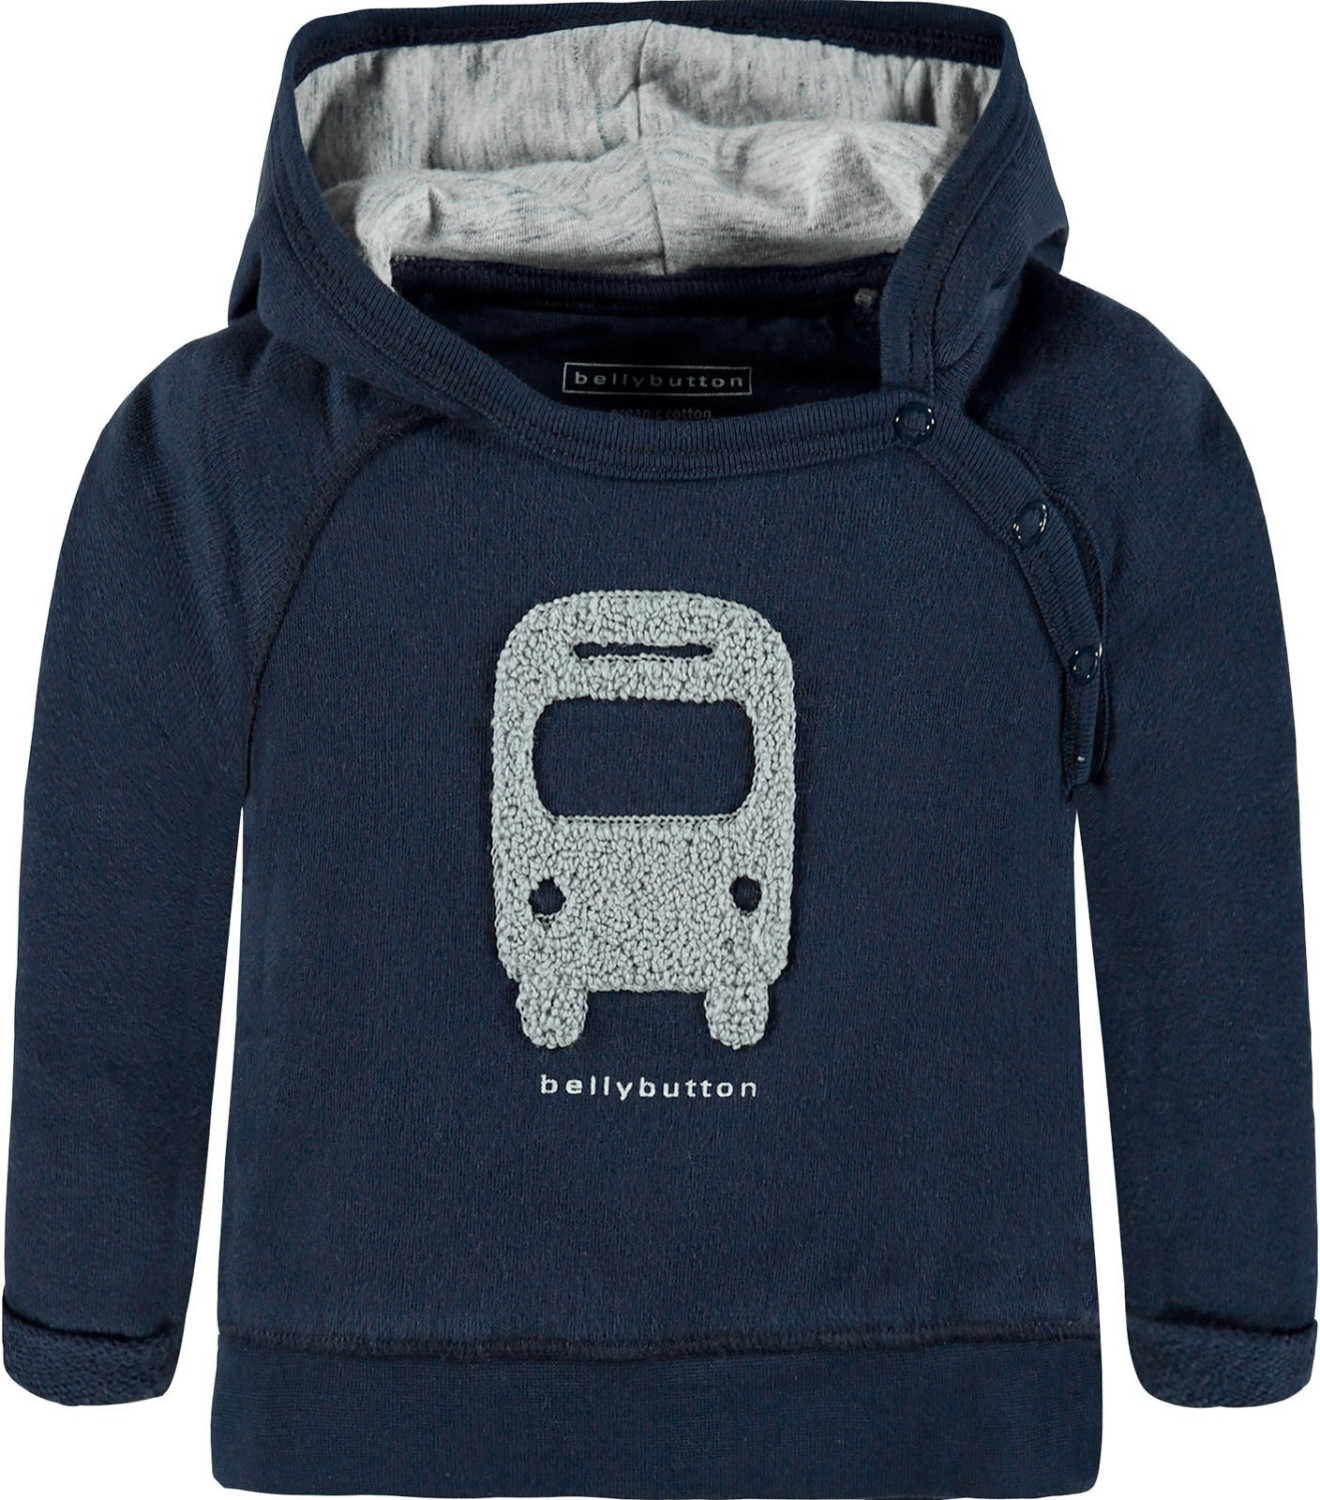 Bellybutton Hoodie (1772563) grey/bus